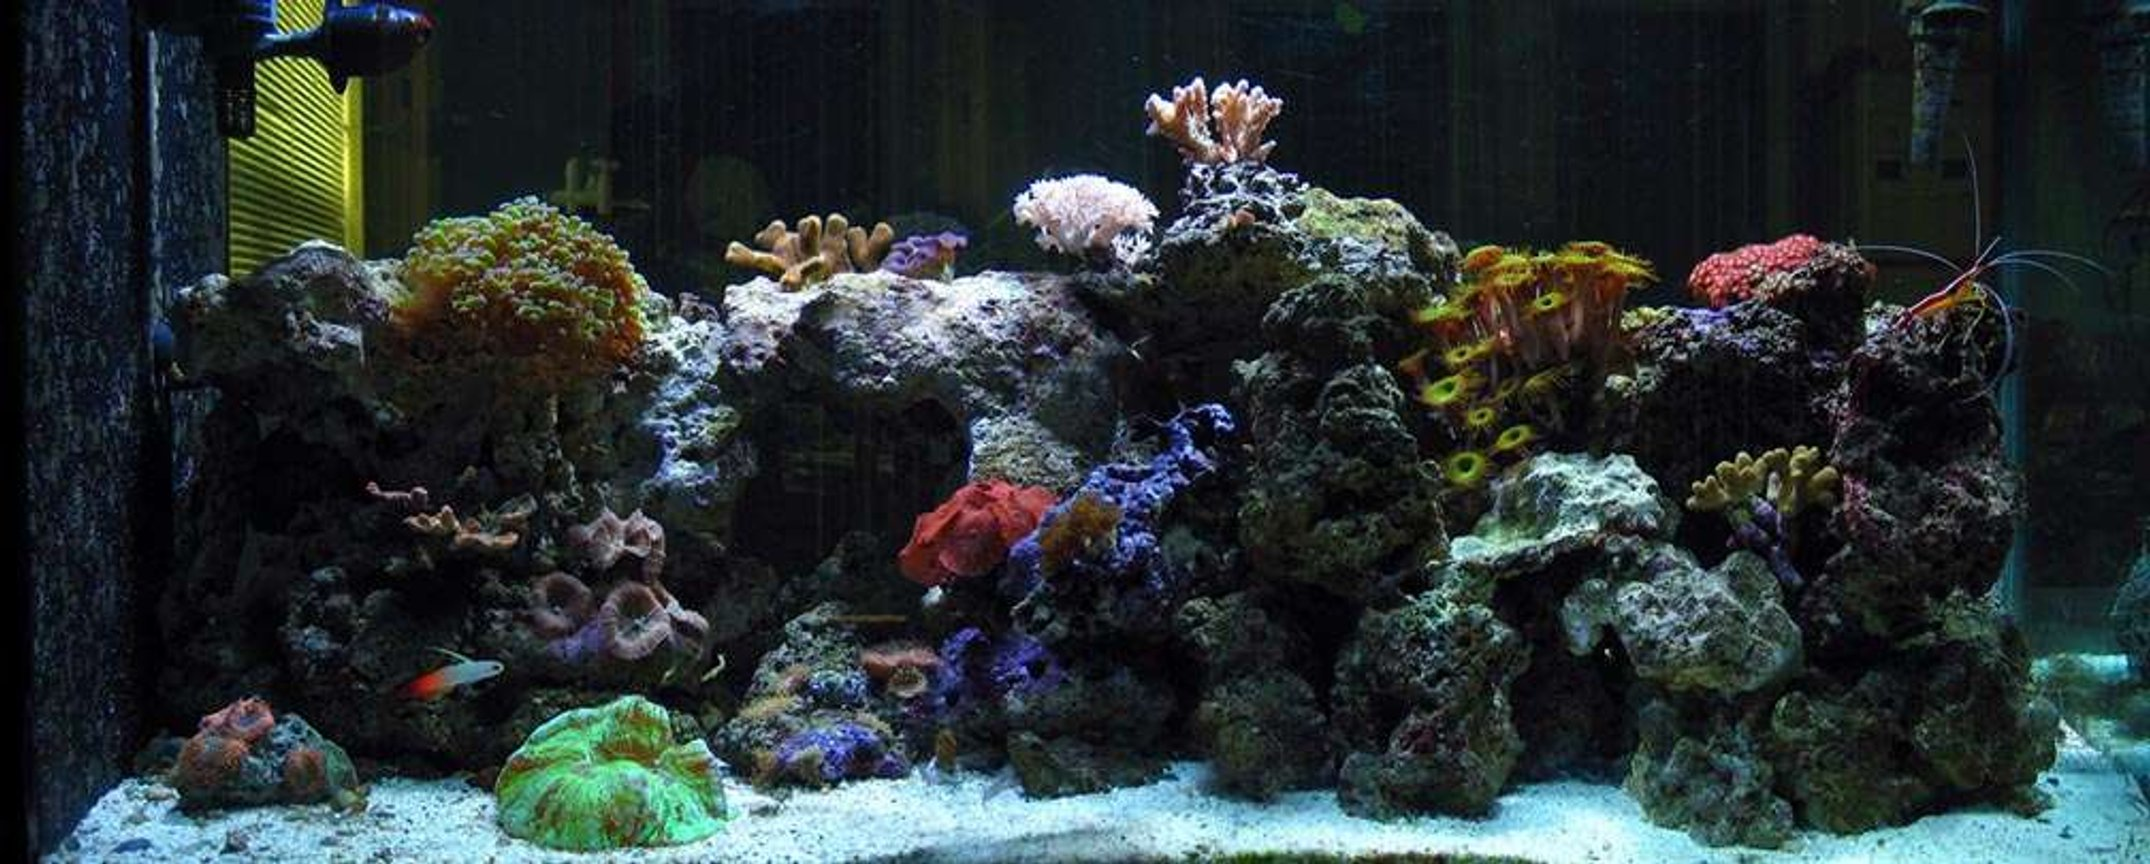 110 gallons reef tank (mostly live coral and fish) - panoramic view of my tank